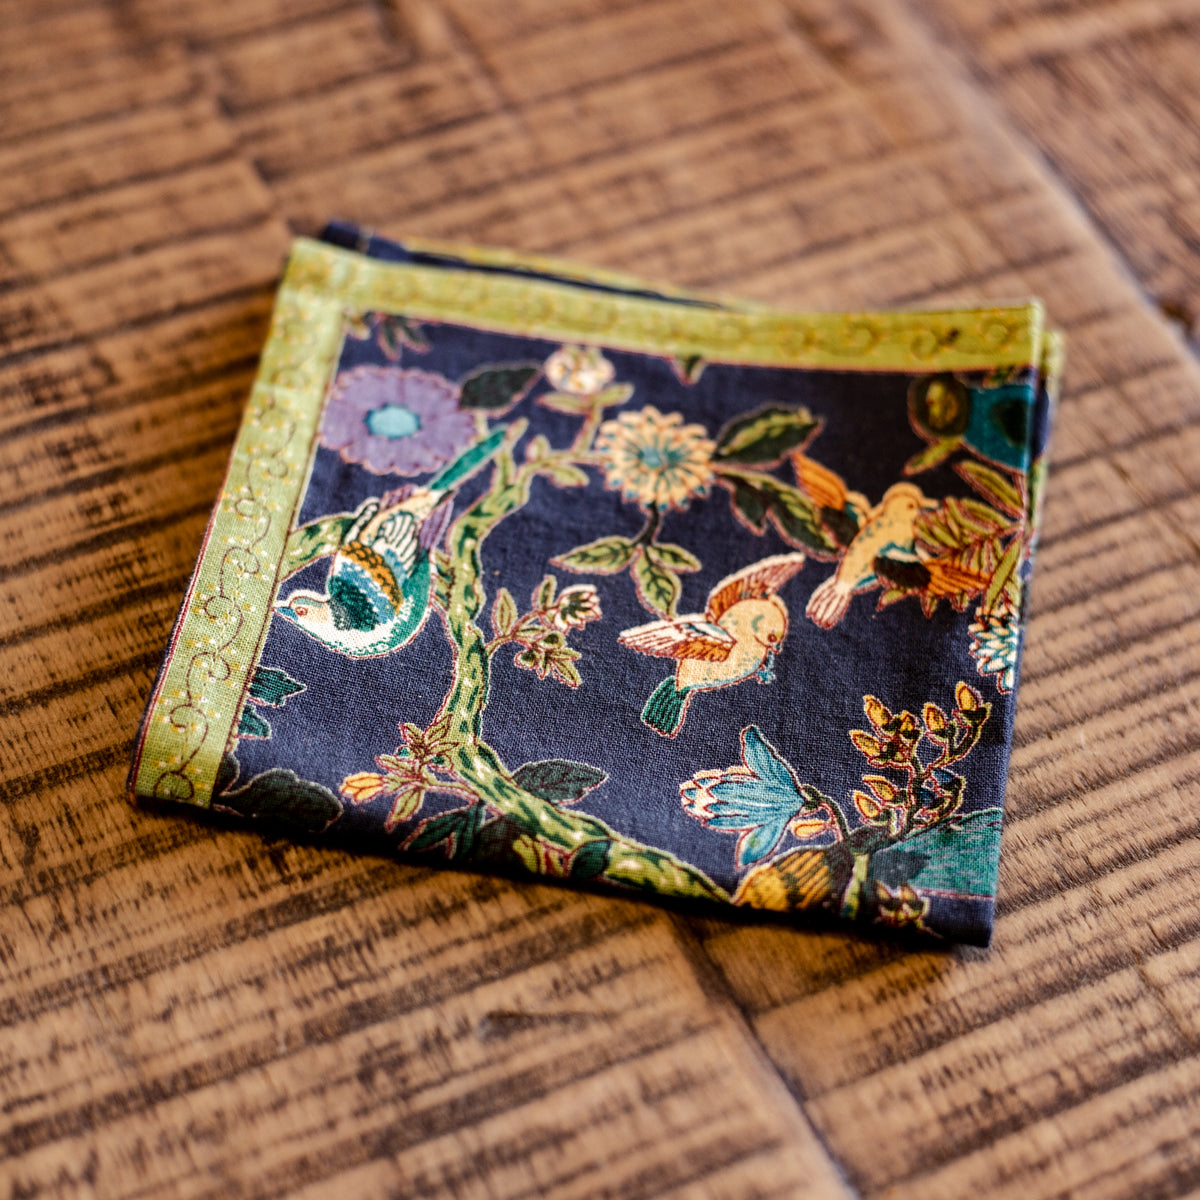 A detailed, colorful cocktail size fabric napkin, featuring richly colored birds and florals, resting on a shabby chic table in Topeka, Kansas.